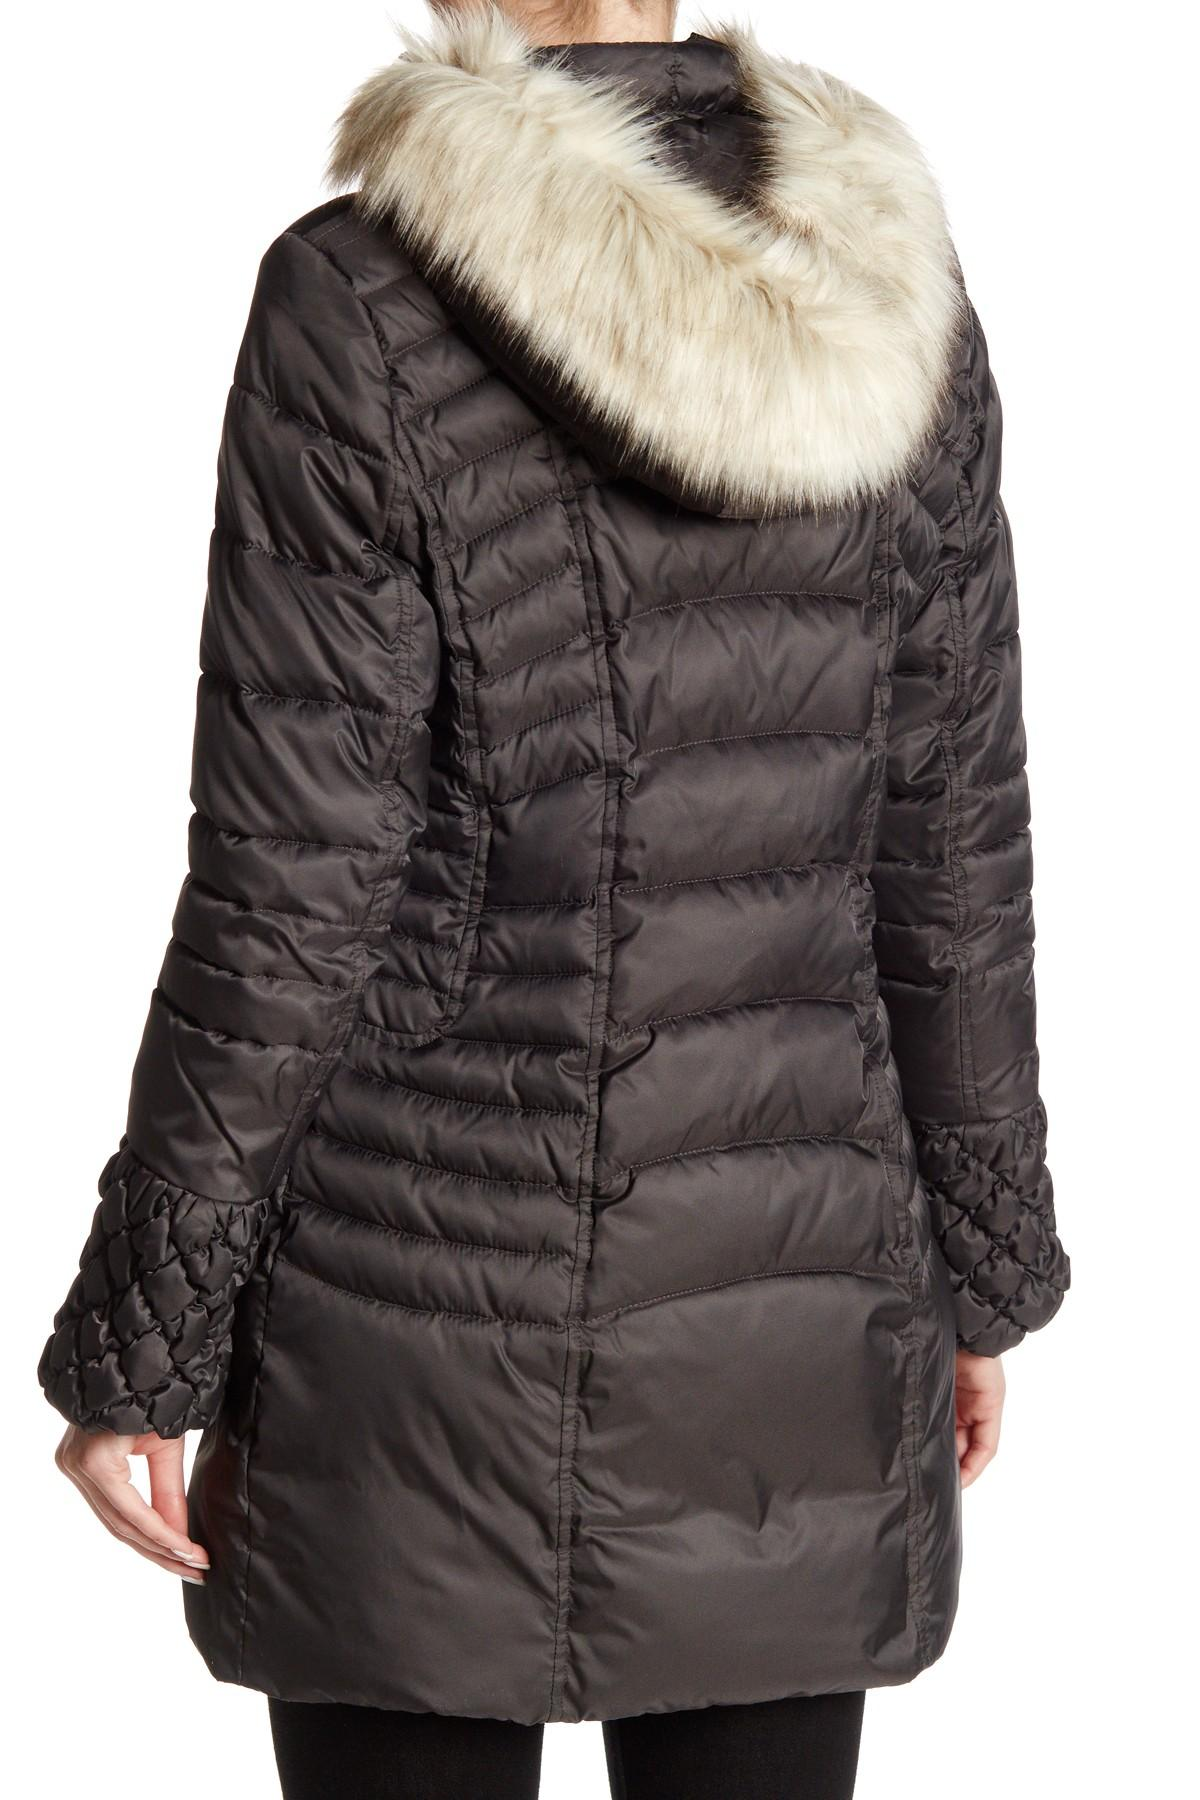 Betsey Johnson Faux Fur Trim Hooded Puffer Jacket In Gray